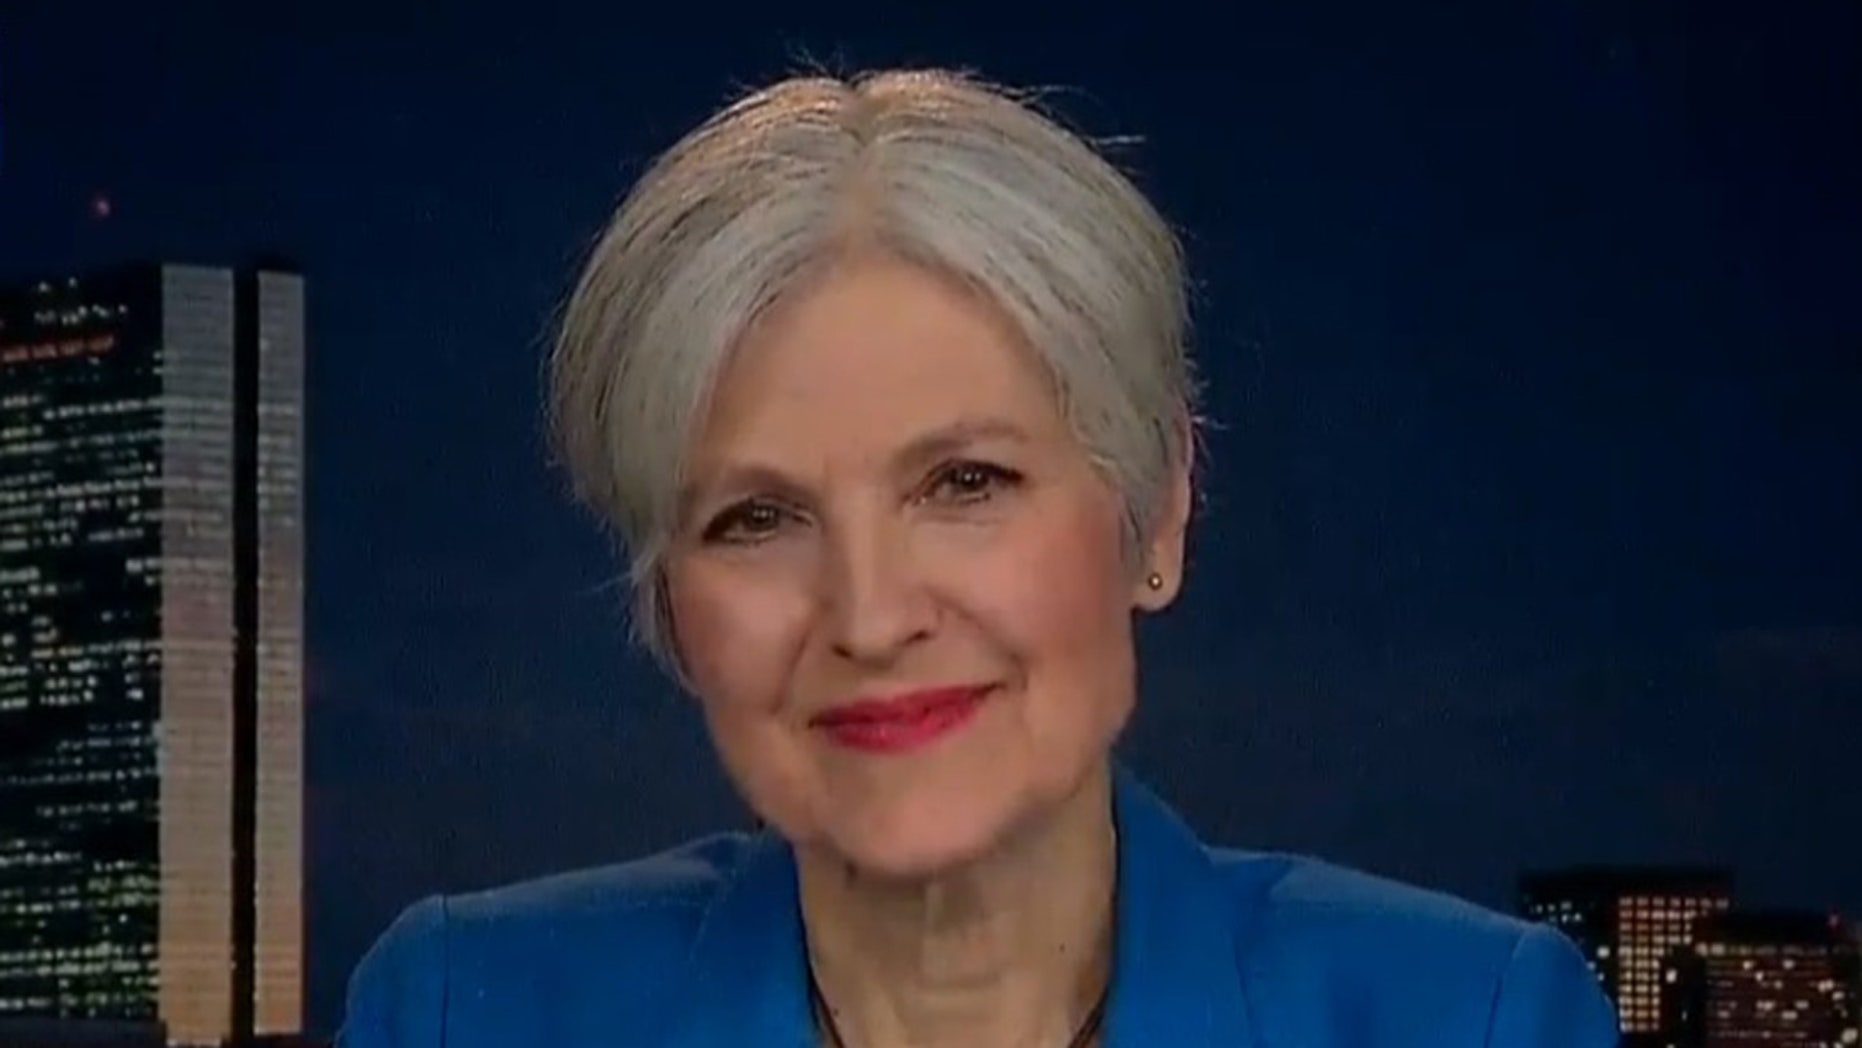 """Former Green Party presidential candidate Jill Stein told Fox News Thursday night that Americans """"have yet to see the proof"""" that Moscow meddled in last year's election."""